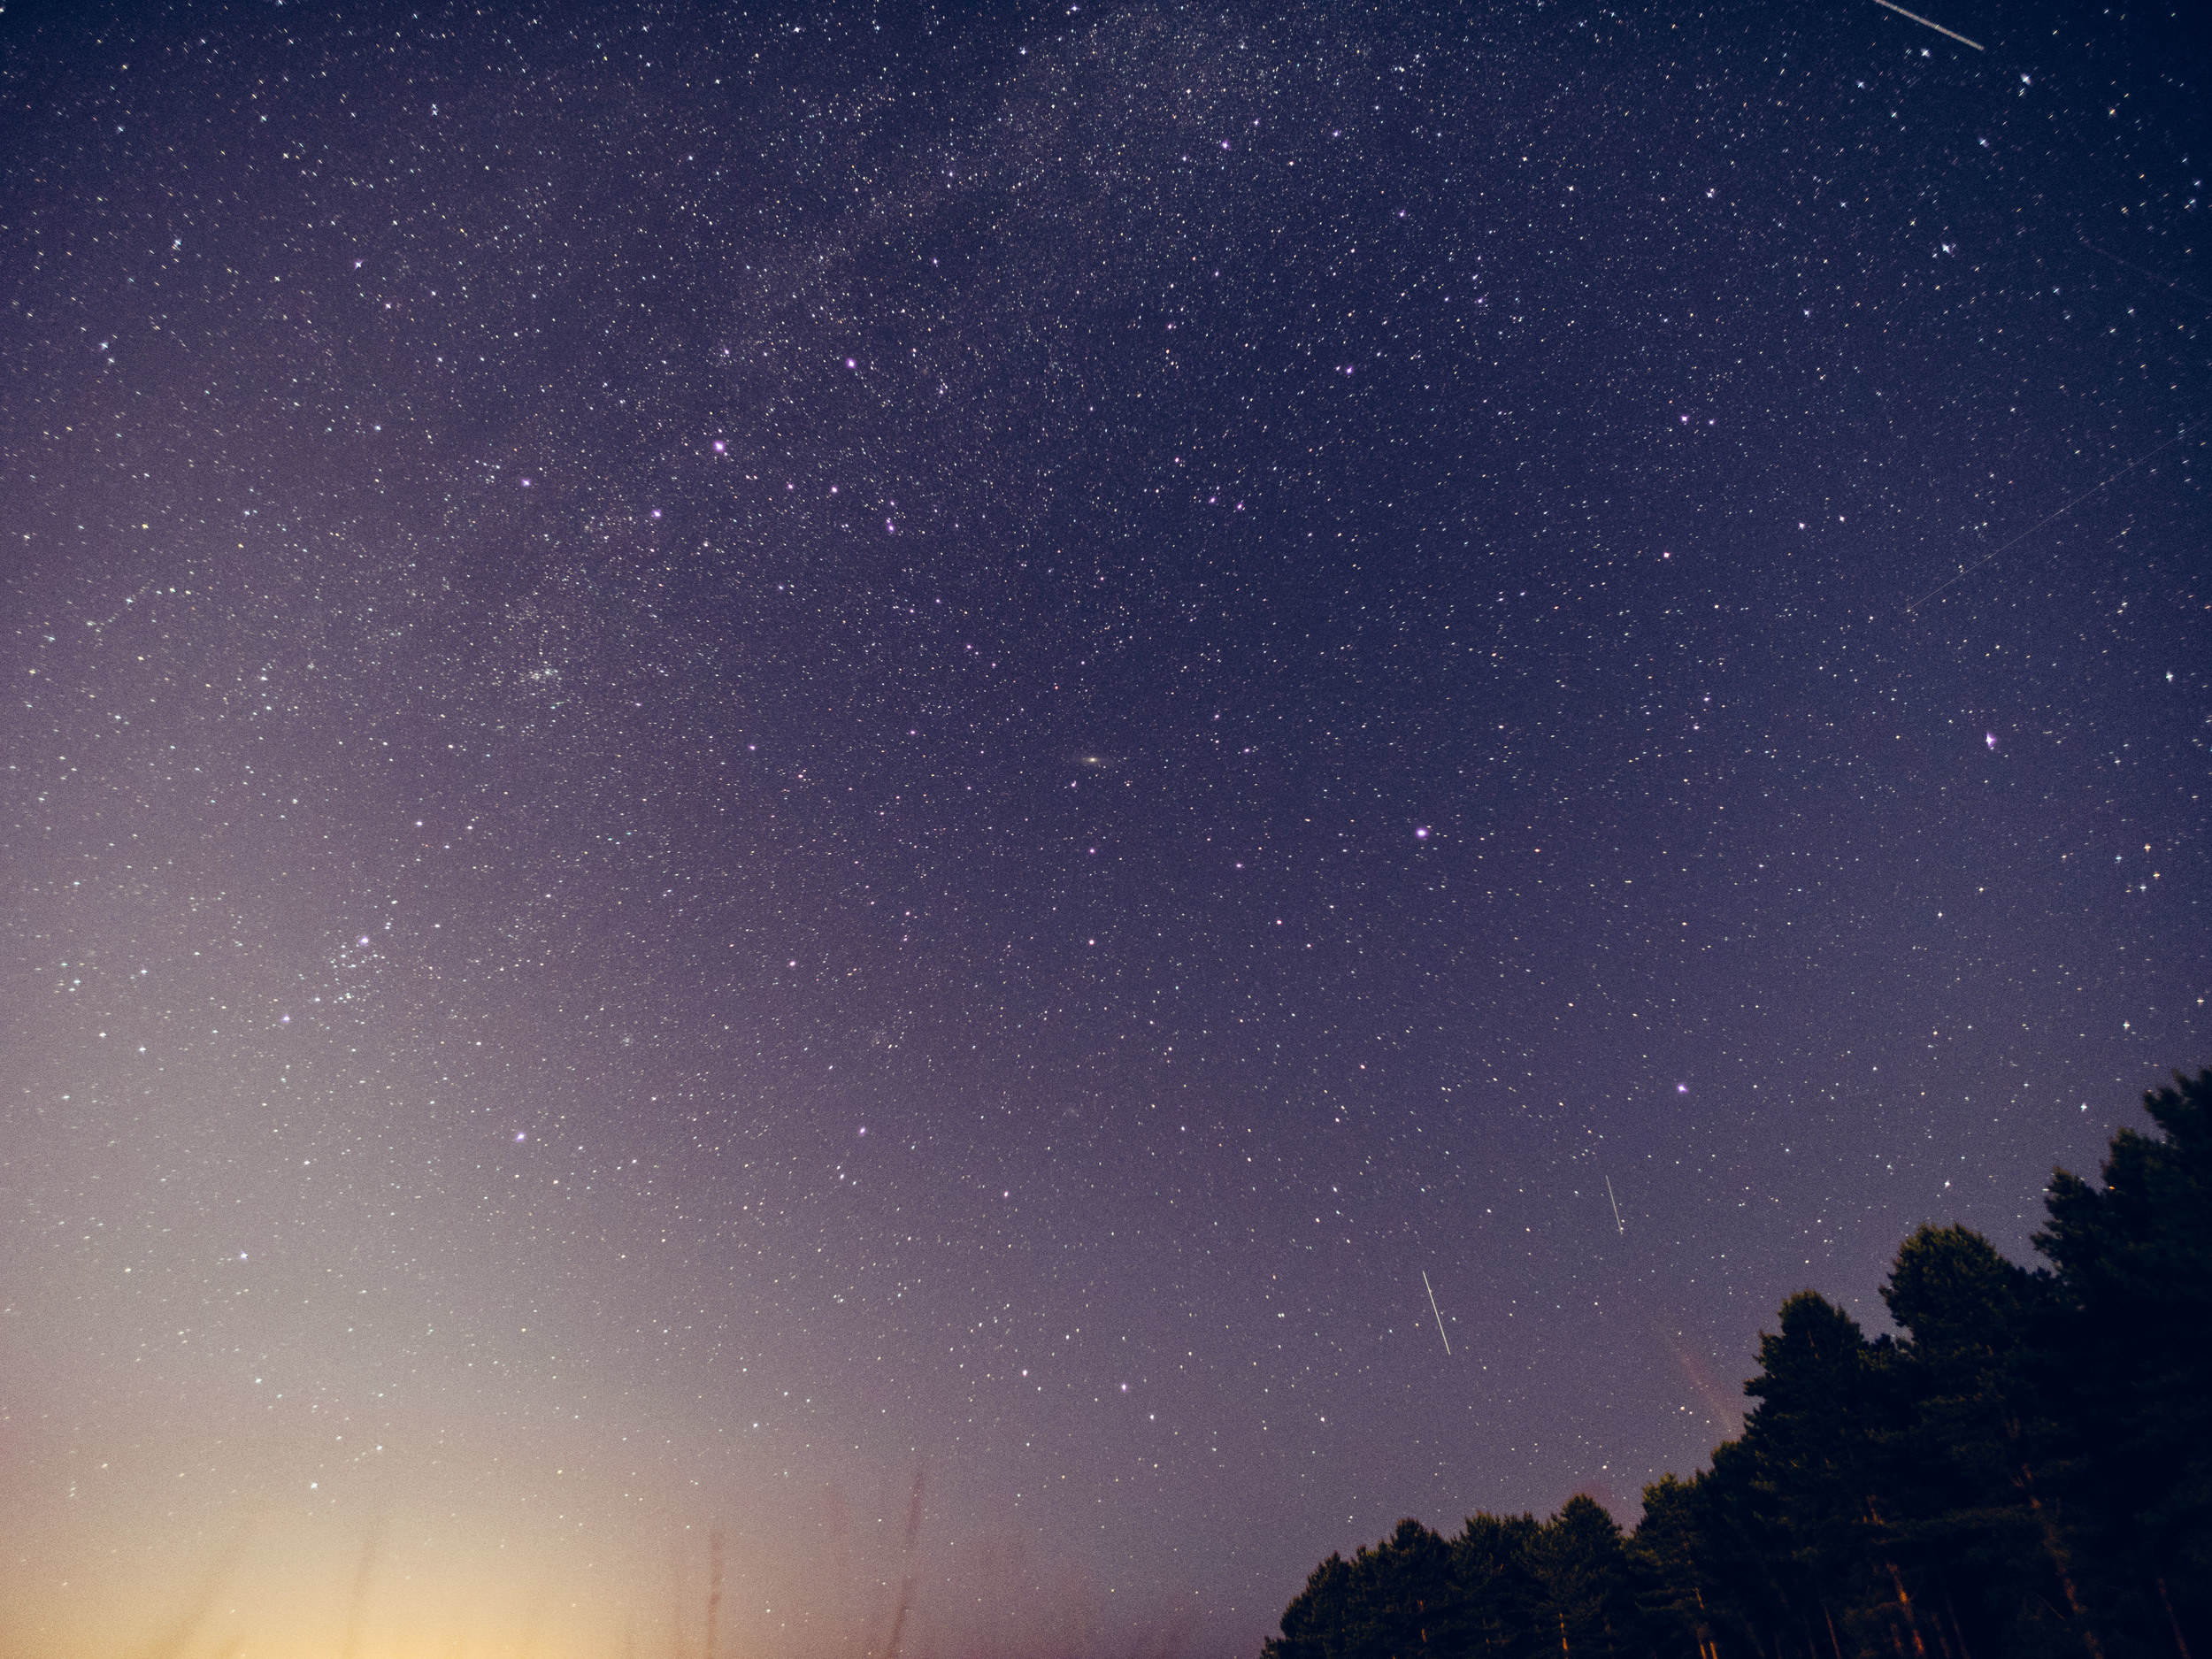 Five meteors in this frame.